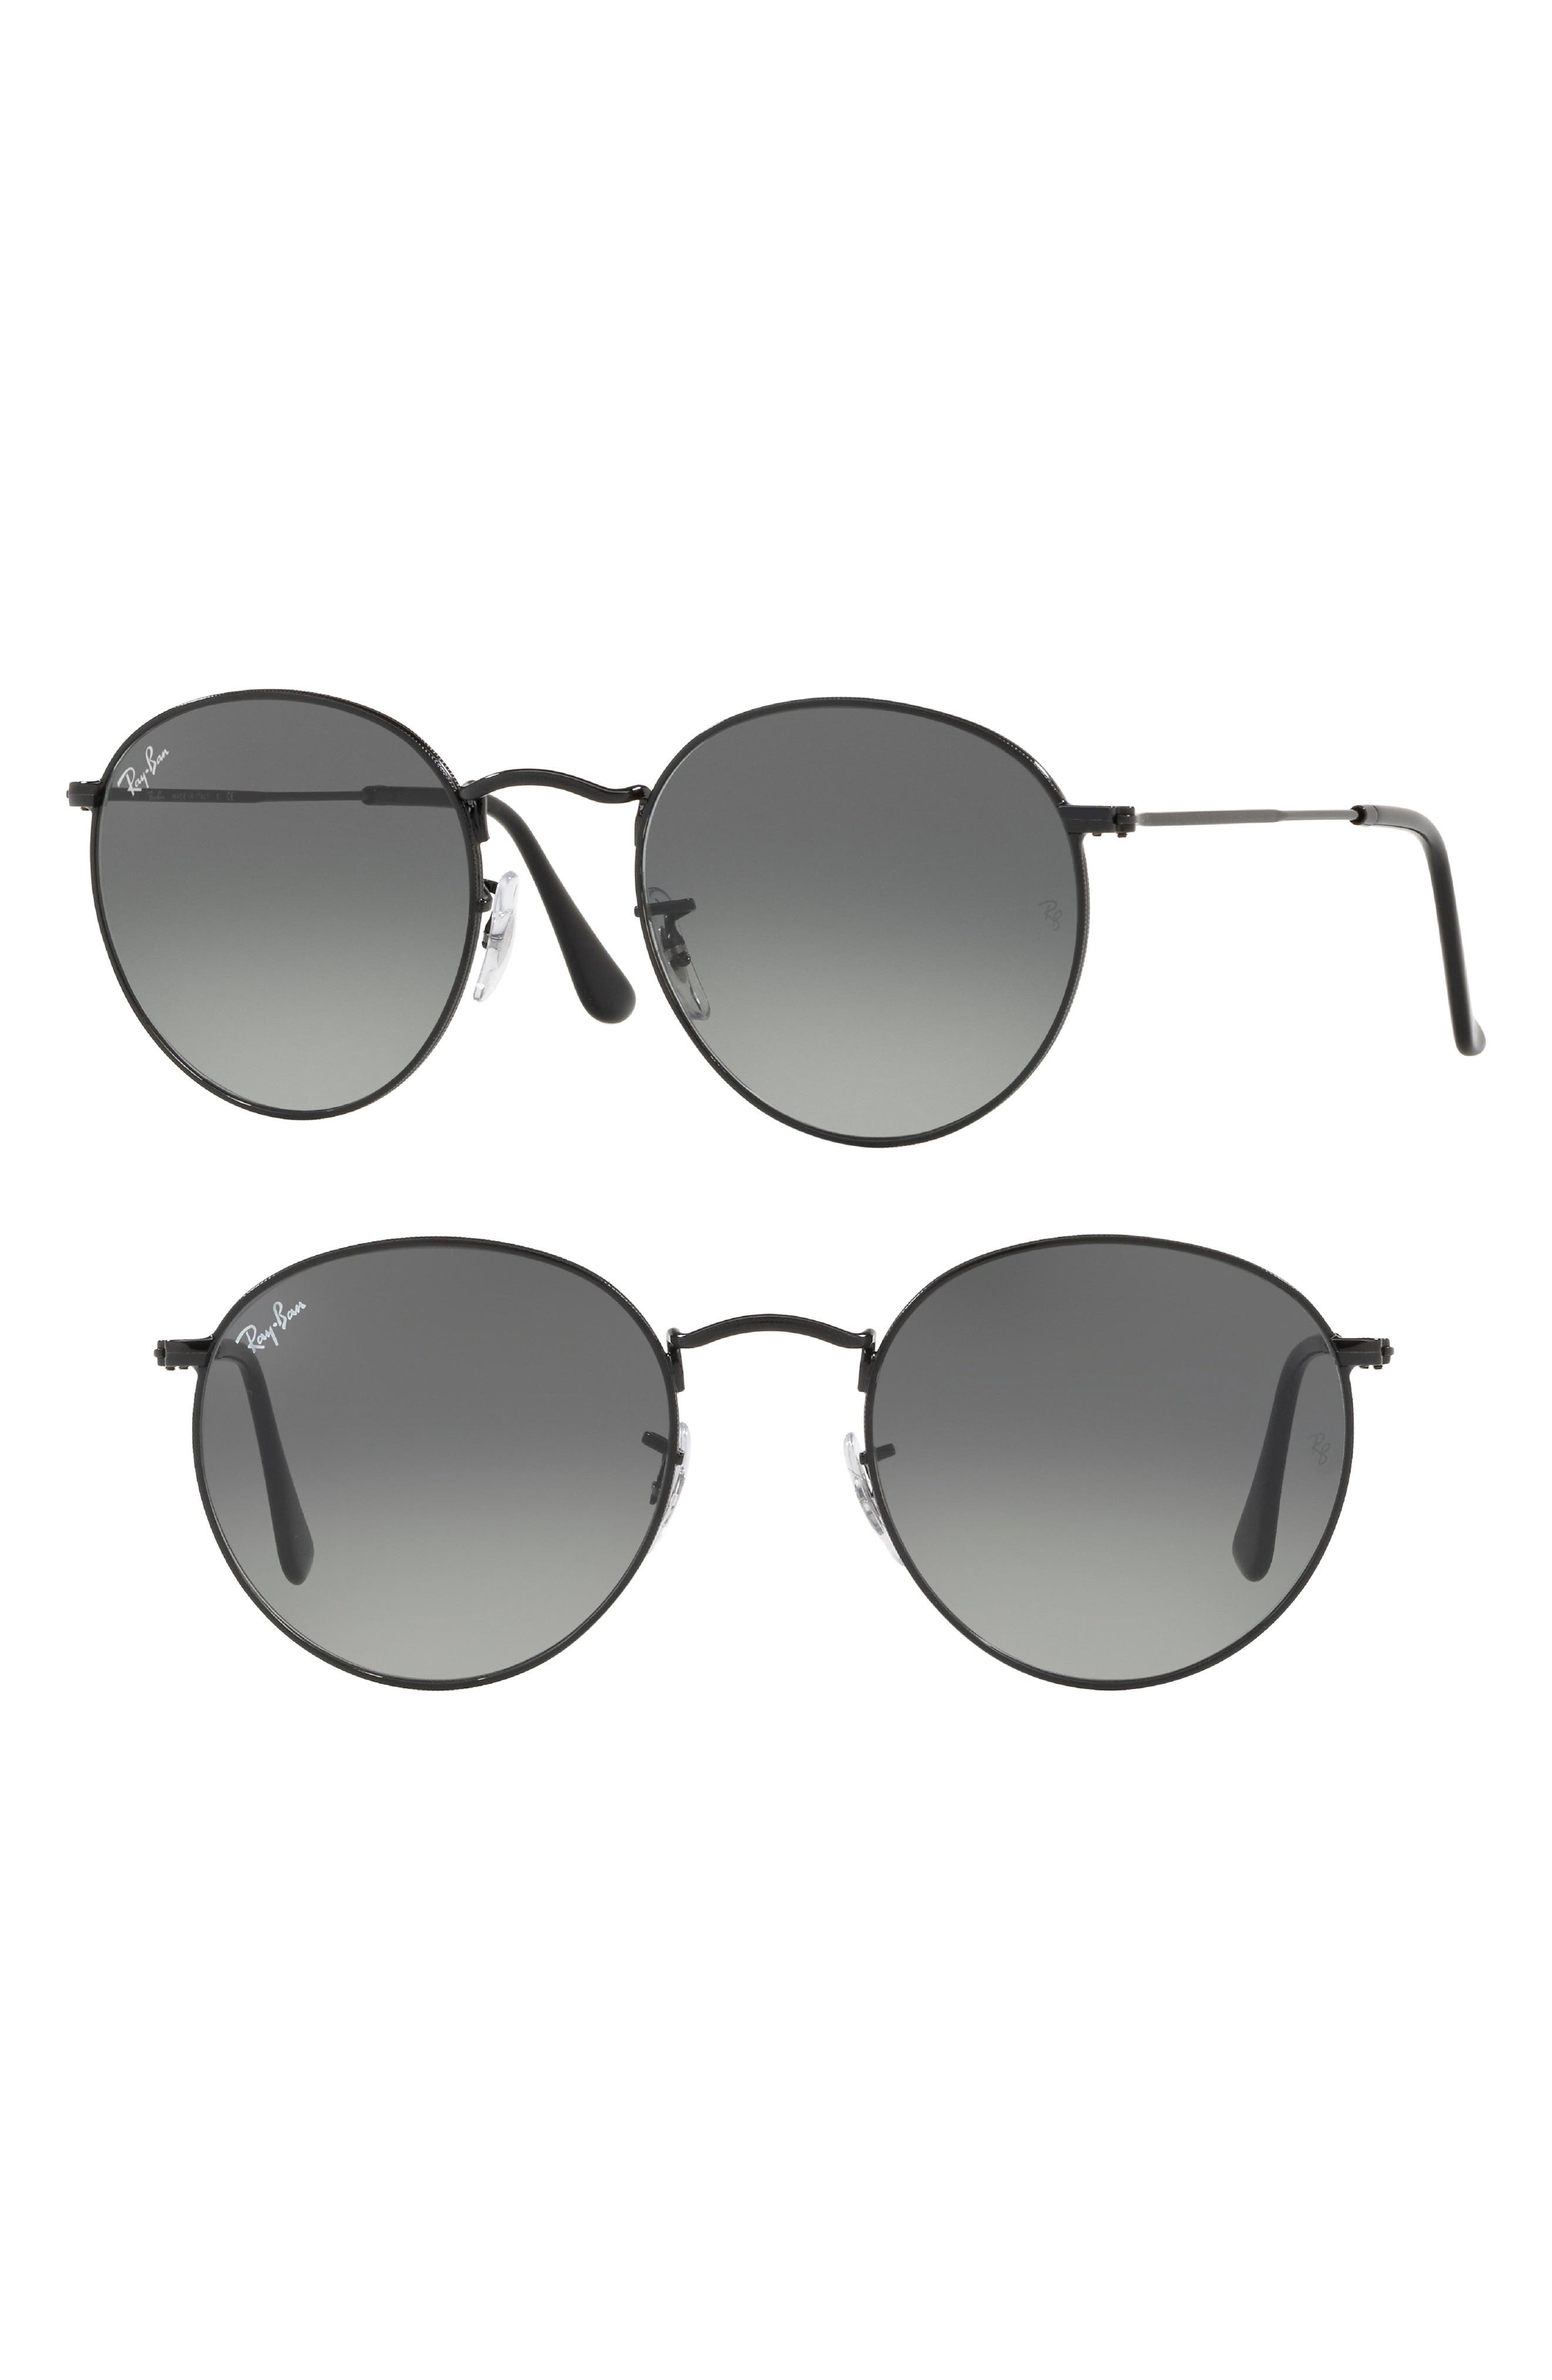 53mm Round Retro Sunglasses,                             Main thumbnail 1, color,                             Black